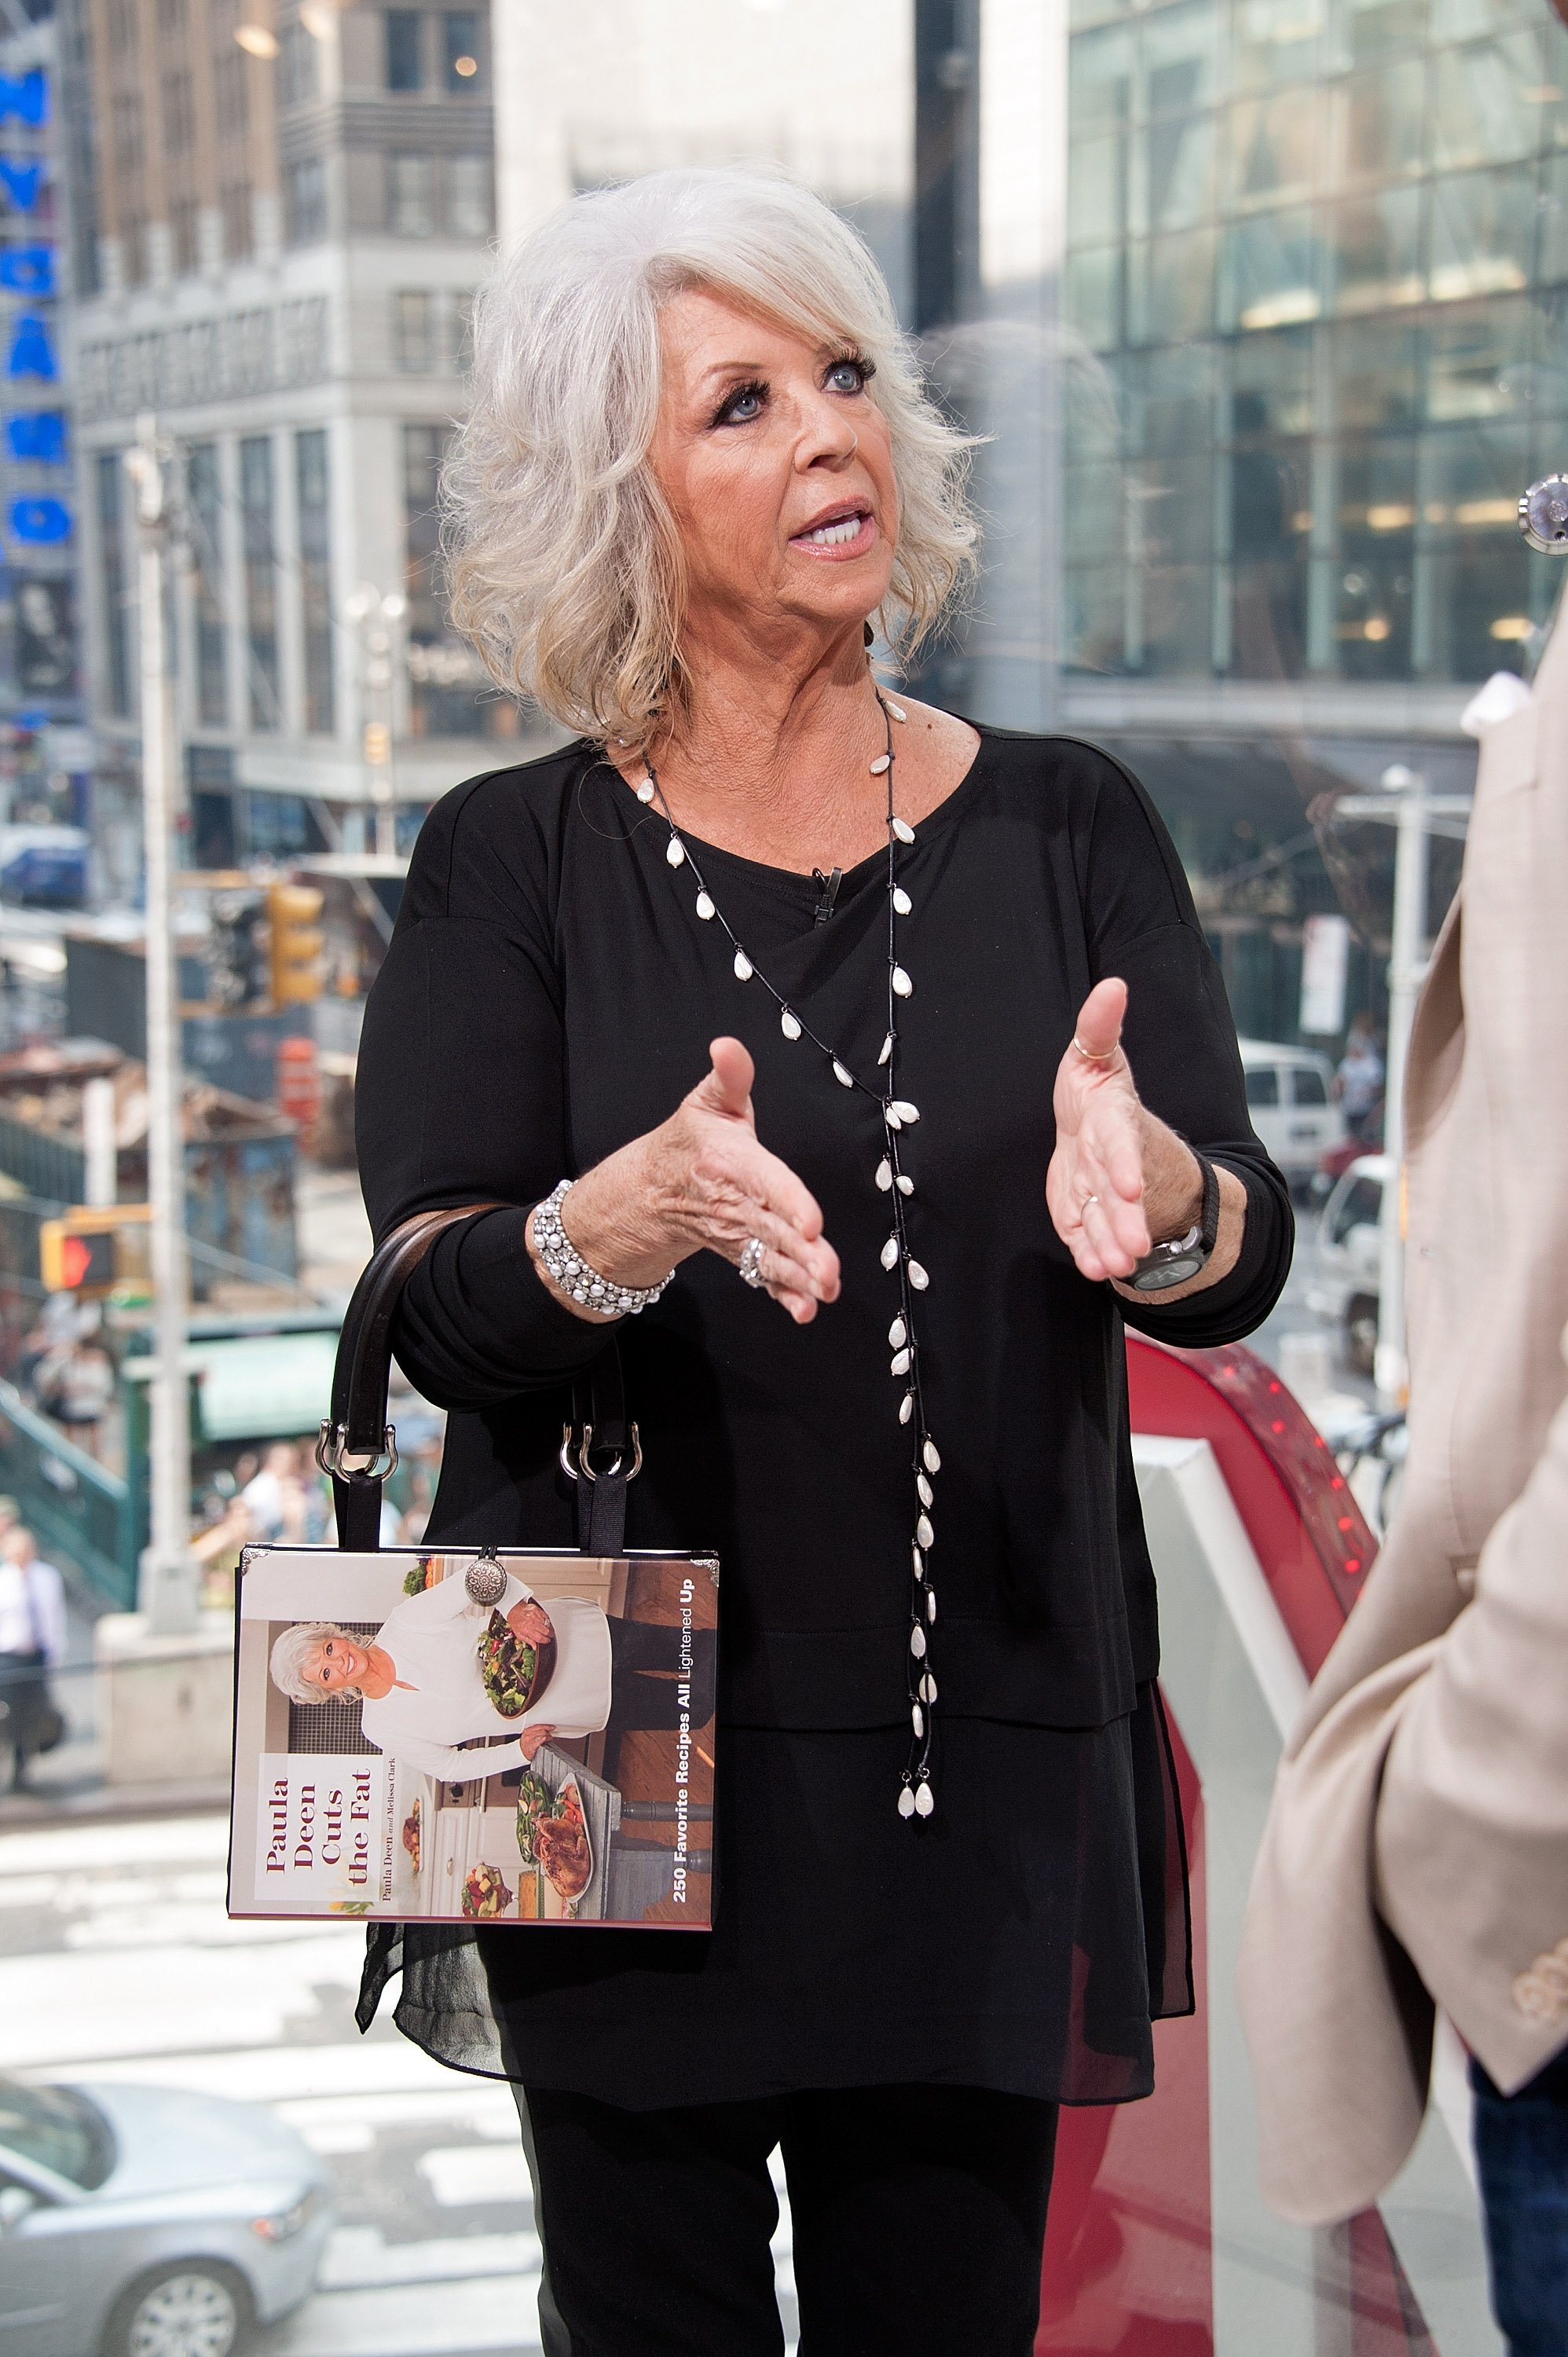 Paula Deen visits 'Extra' at their New York studios at H&M in Times Square on September 2, 2015 in New York City | Photo: Getty Images